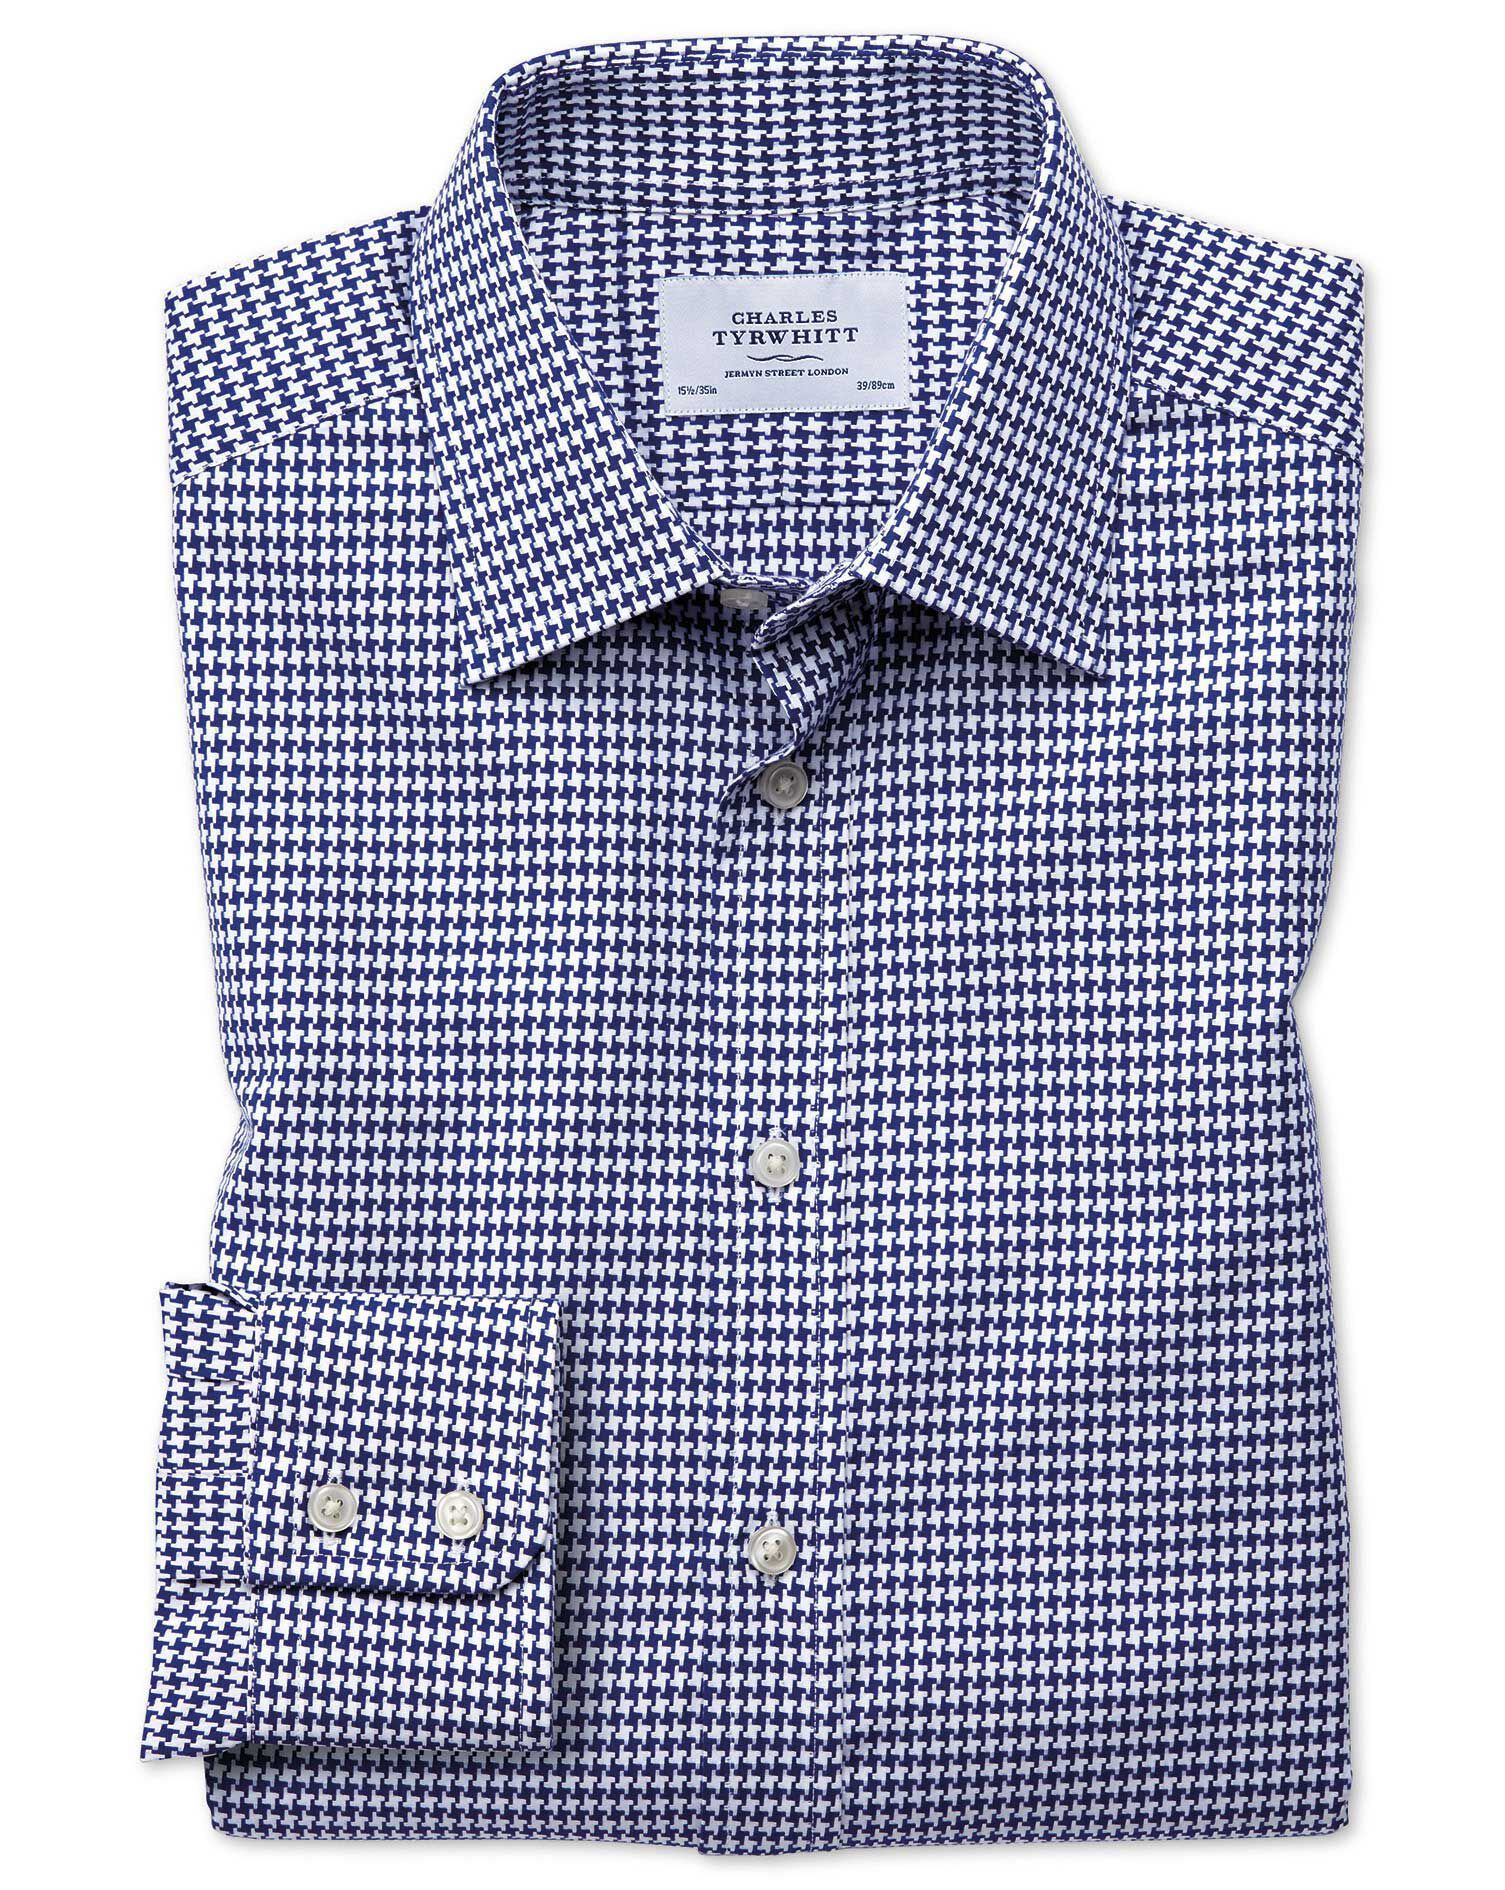 Slim Fit Large Puppytooth Blue Cotton Formal Shirt Single Cuff Size 17/35 by Charles Tyrwhitt